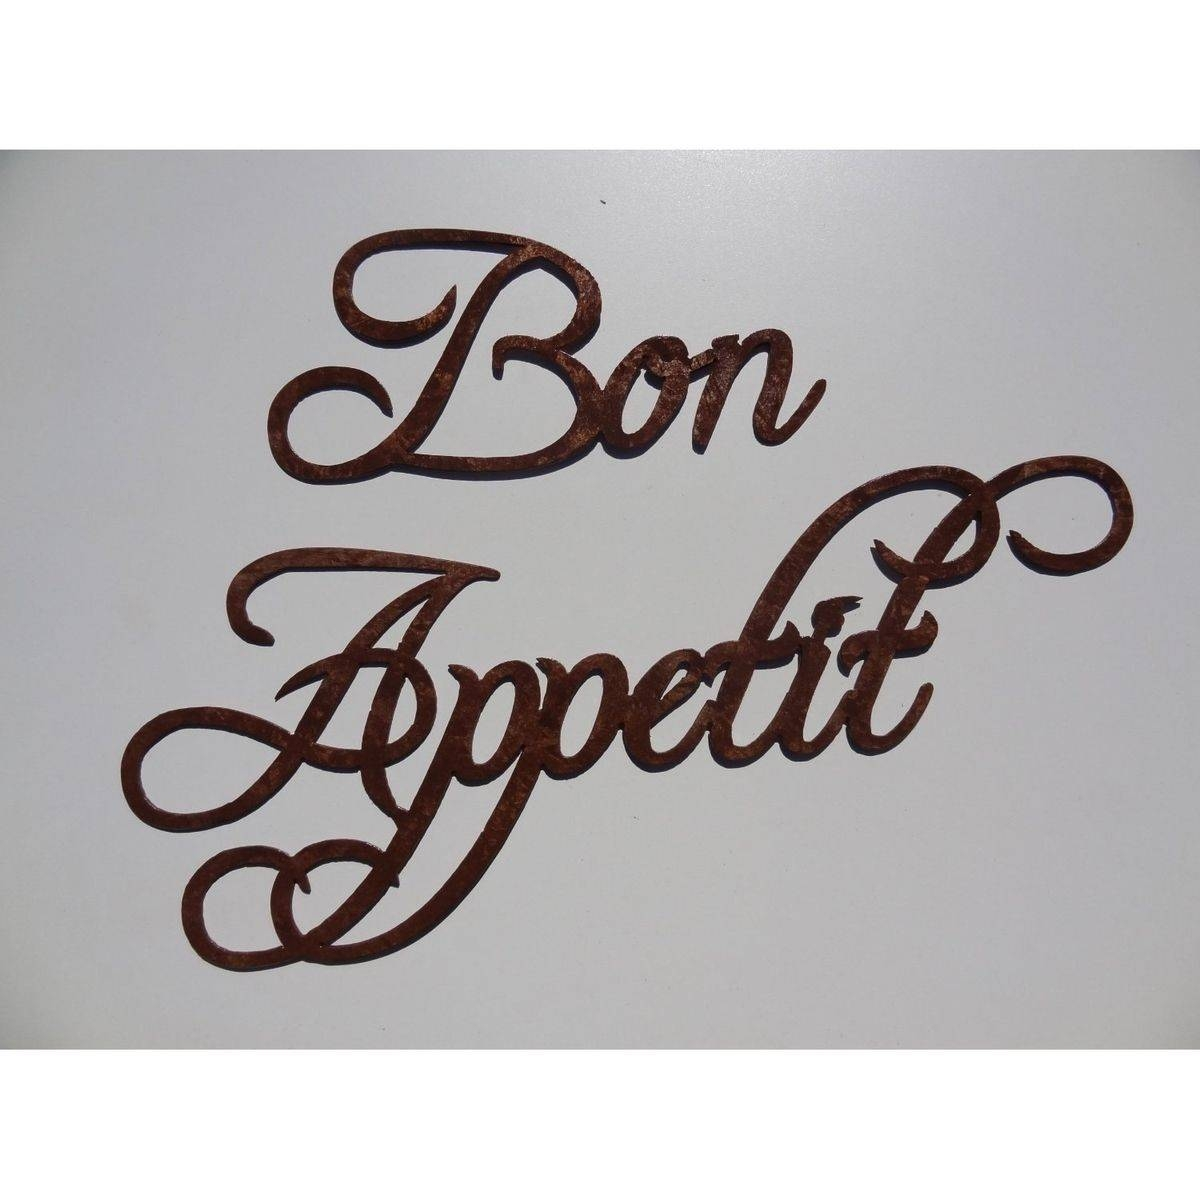 Custom Made Bon Appetit Words Large Metal Wall Art Antique Copper Regarding Most Current Large Metal Wall Art (View 18 of 20)